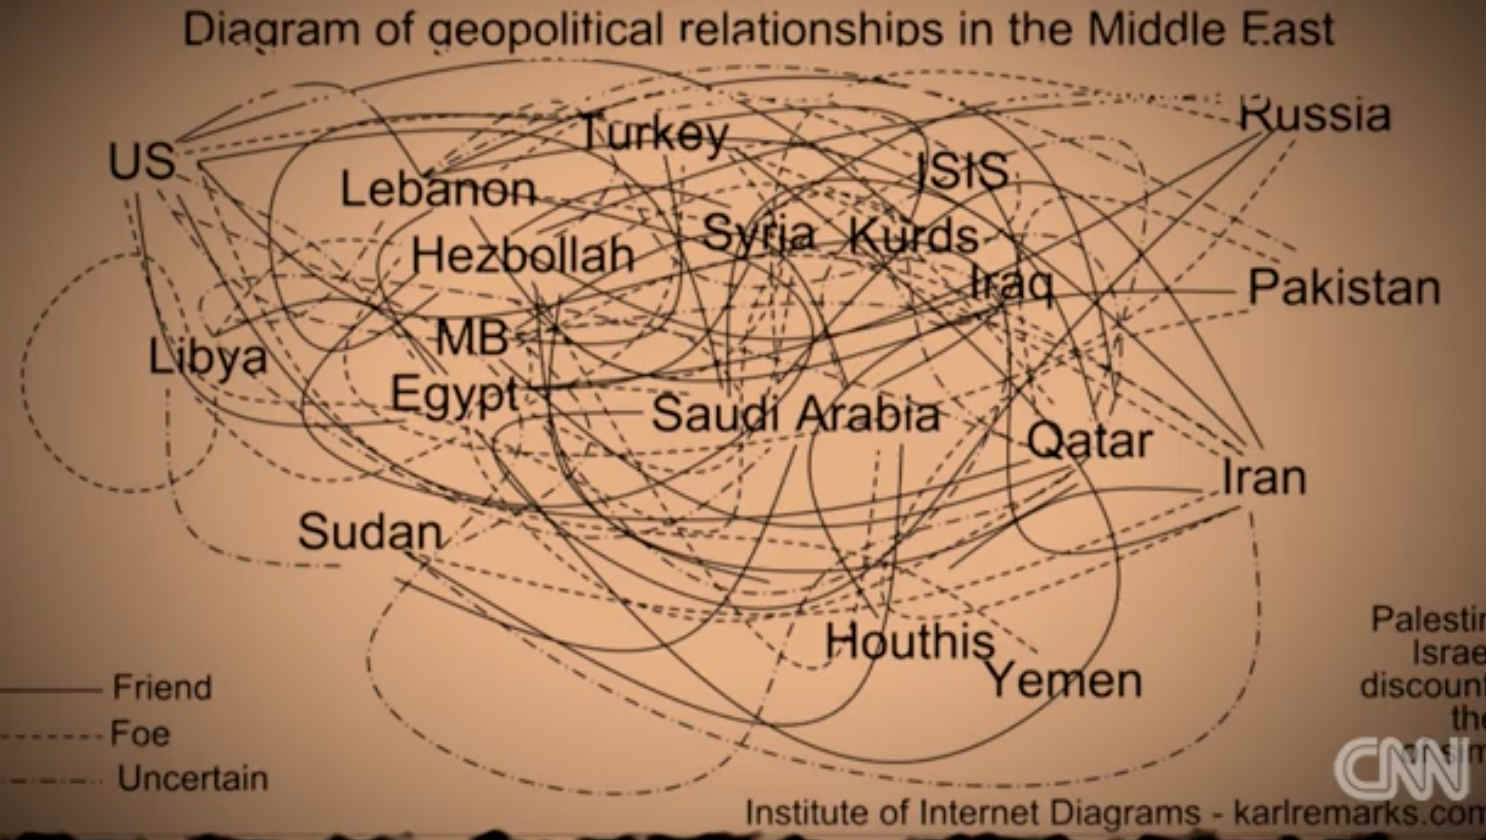 geopolitical issues in middle east In the middle east, regional powers have shrouded their geopolitical  in this  context, political discourse around critical issues has become.